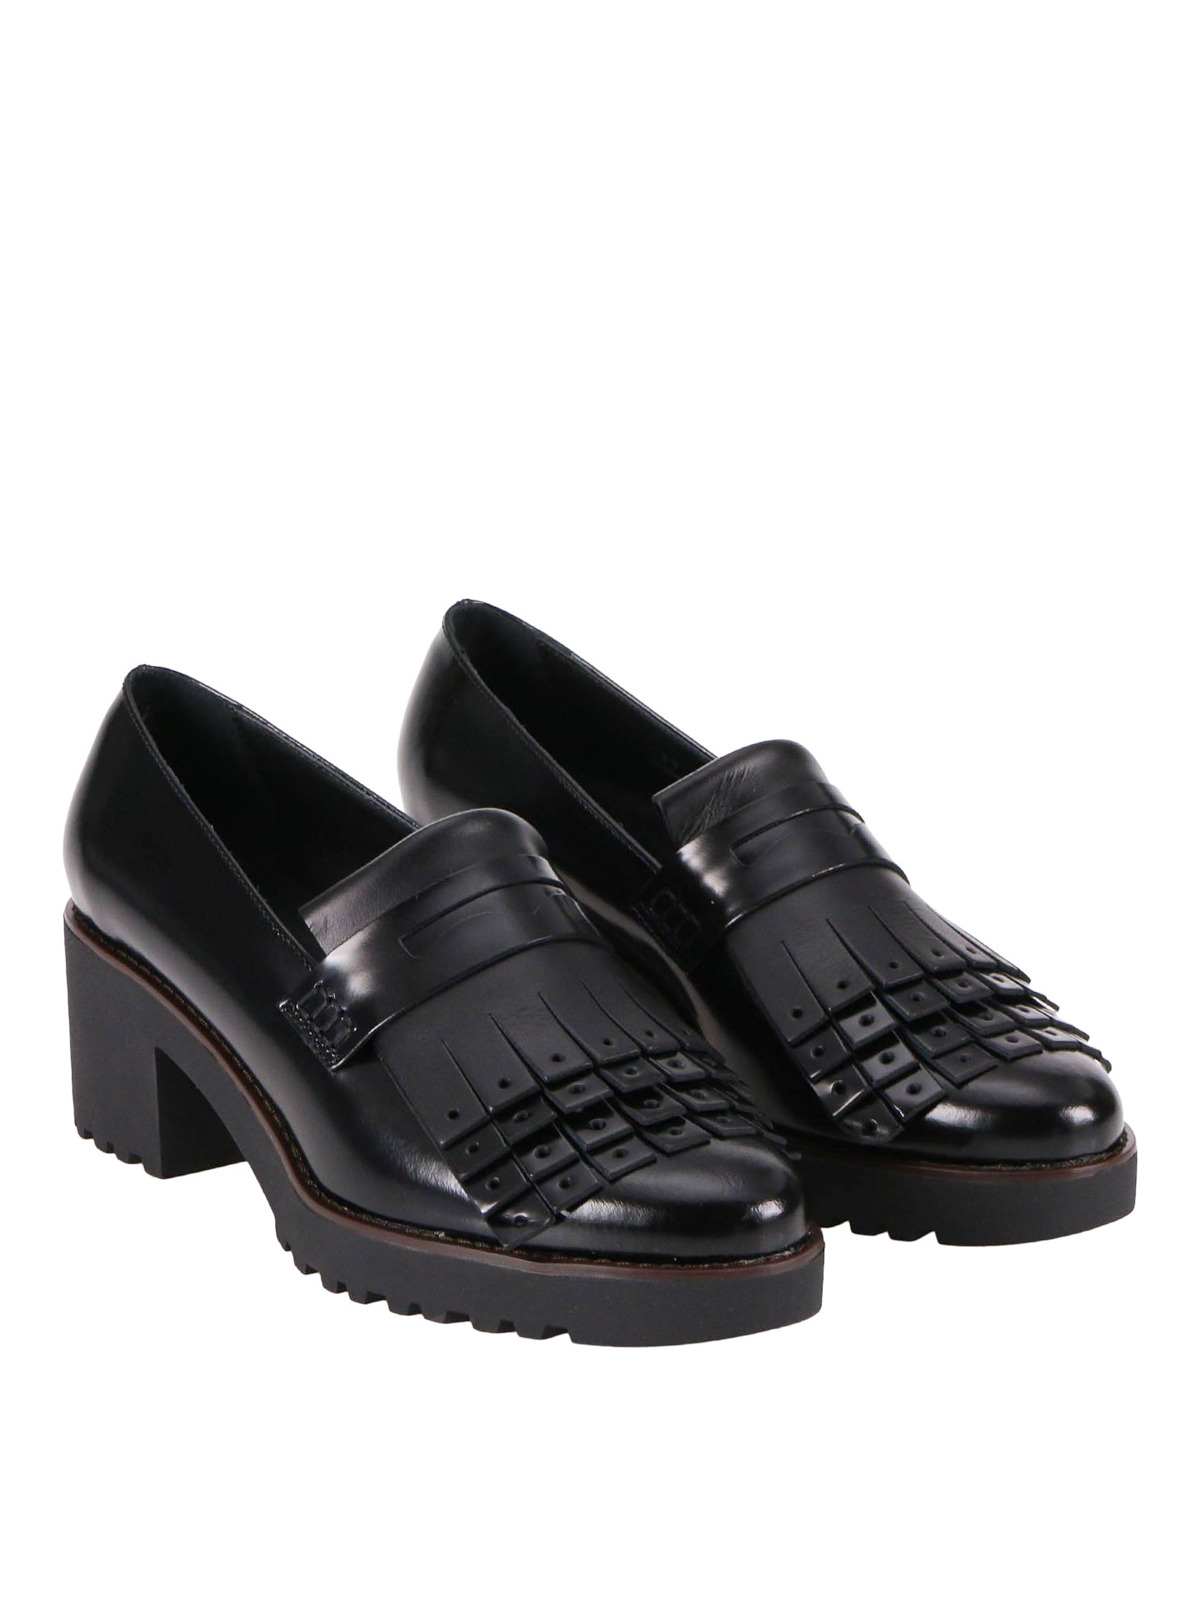 Loafers & Slippers Hogan - H277 leather fringed loafers ...